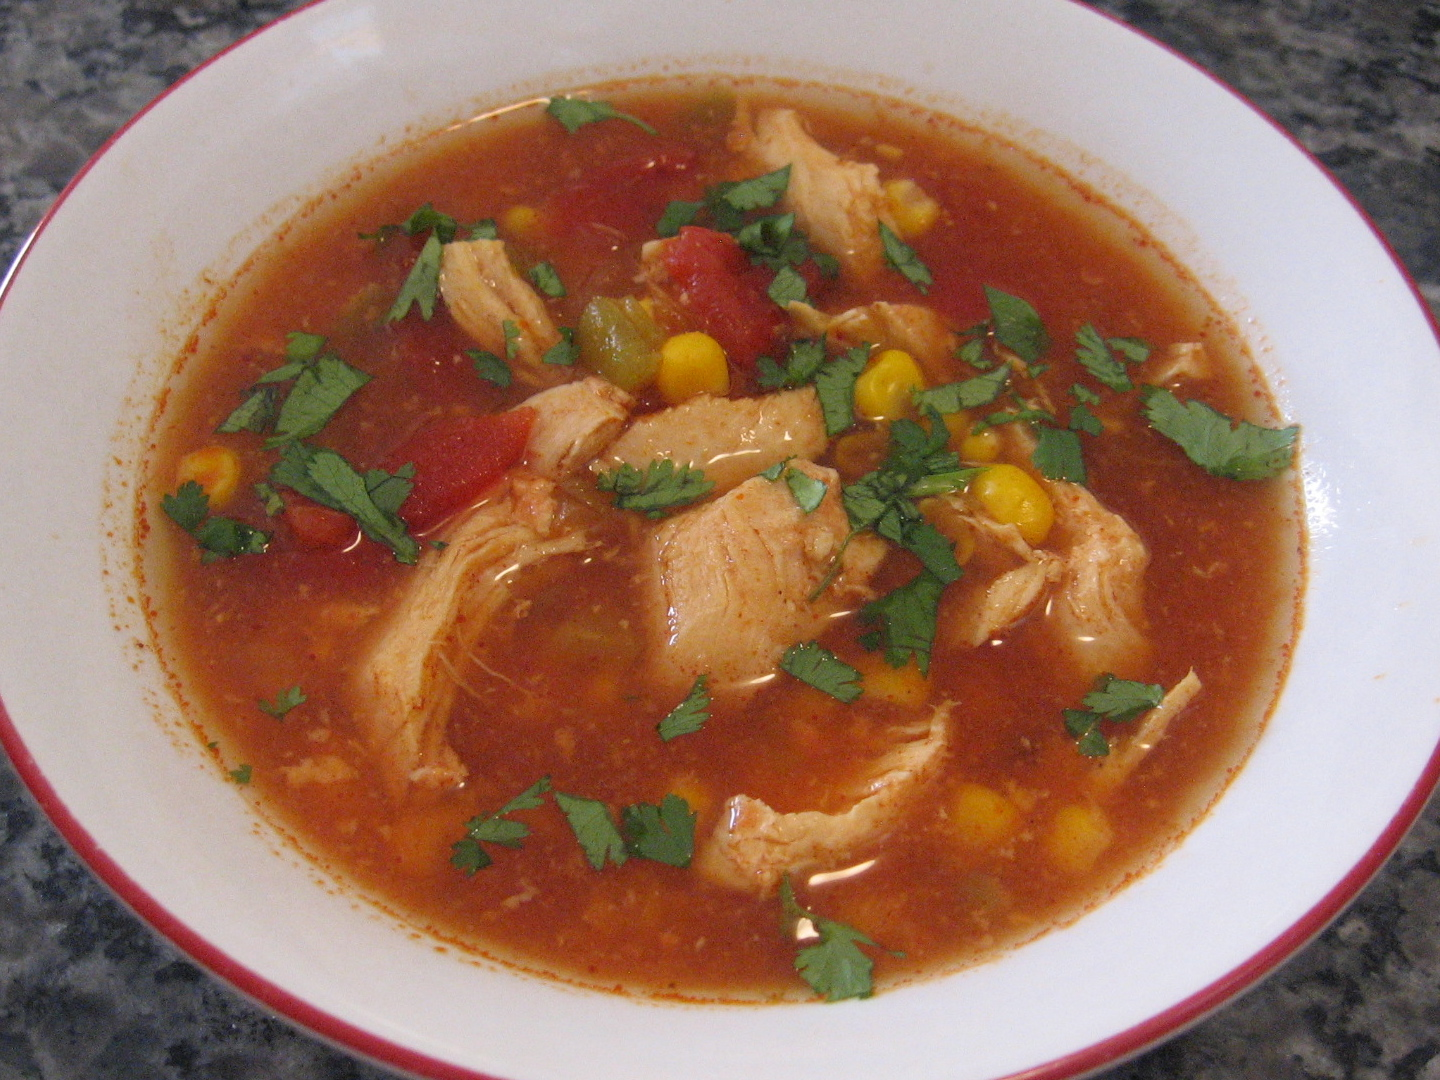 Cooking with Mandy: Slow Cooker Chicken Tortilla Soup